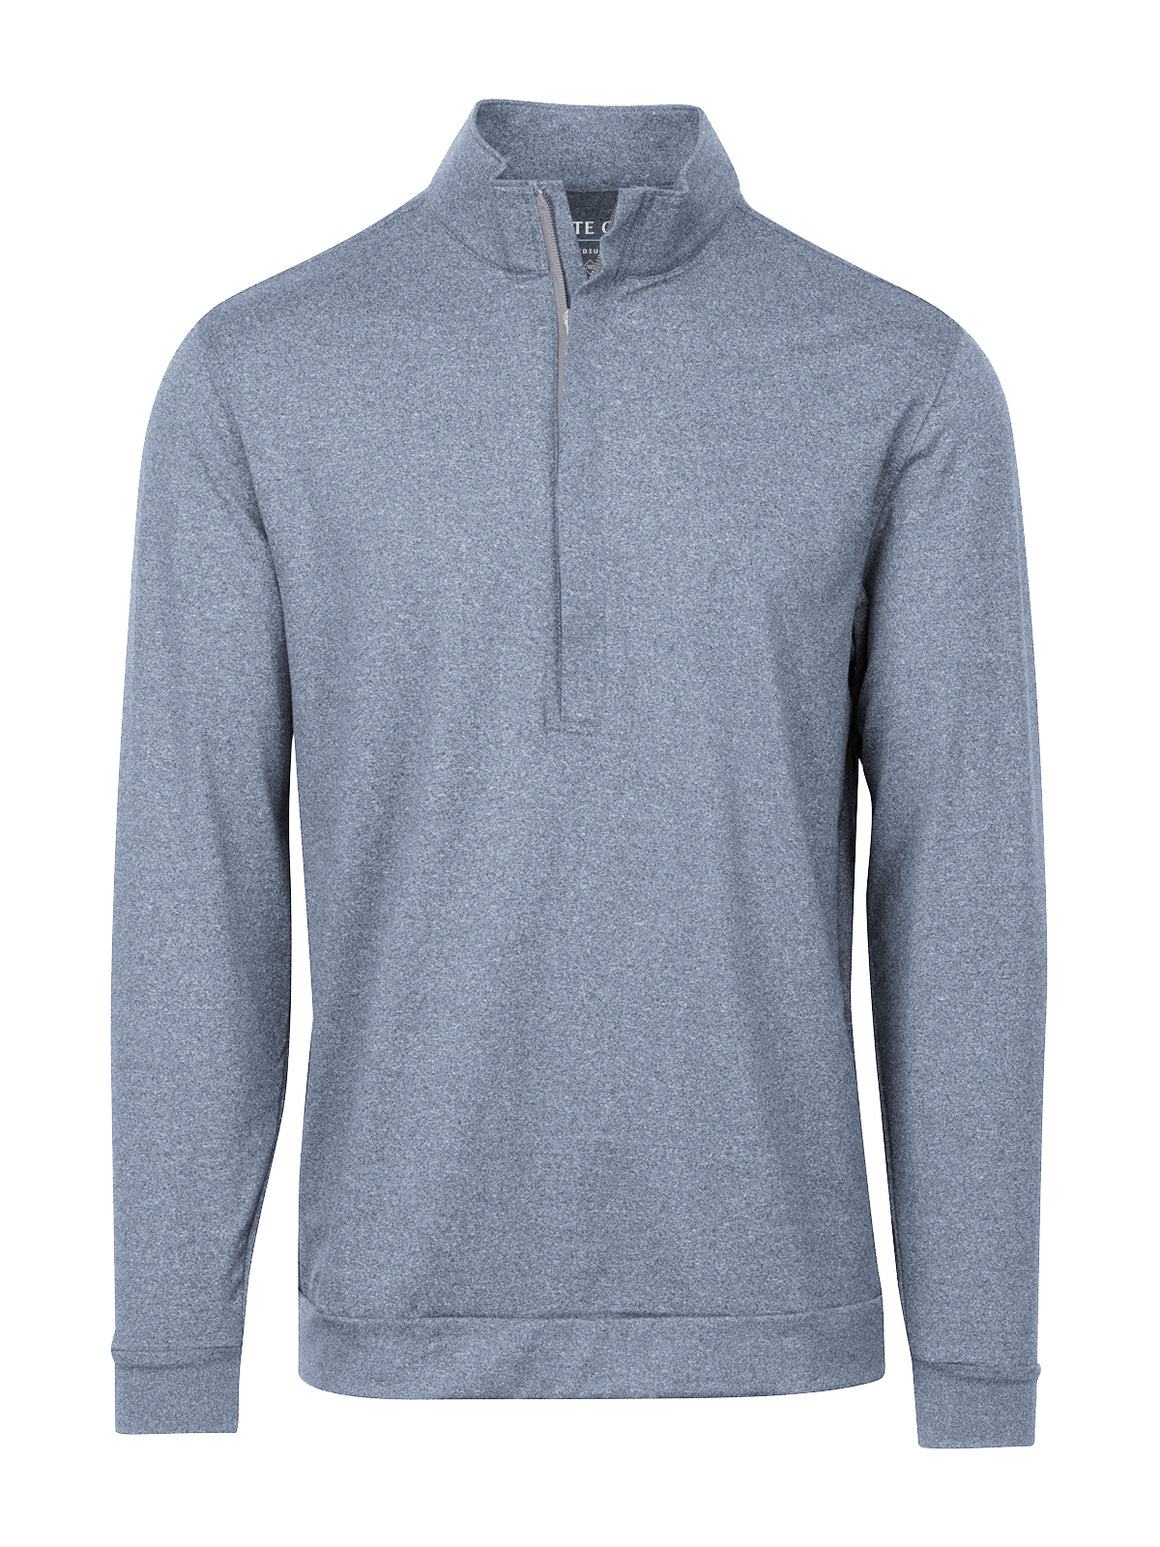 Hightower Half Zip - Dark Denim Heather